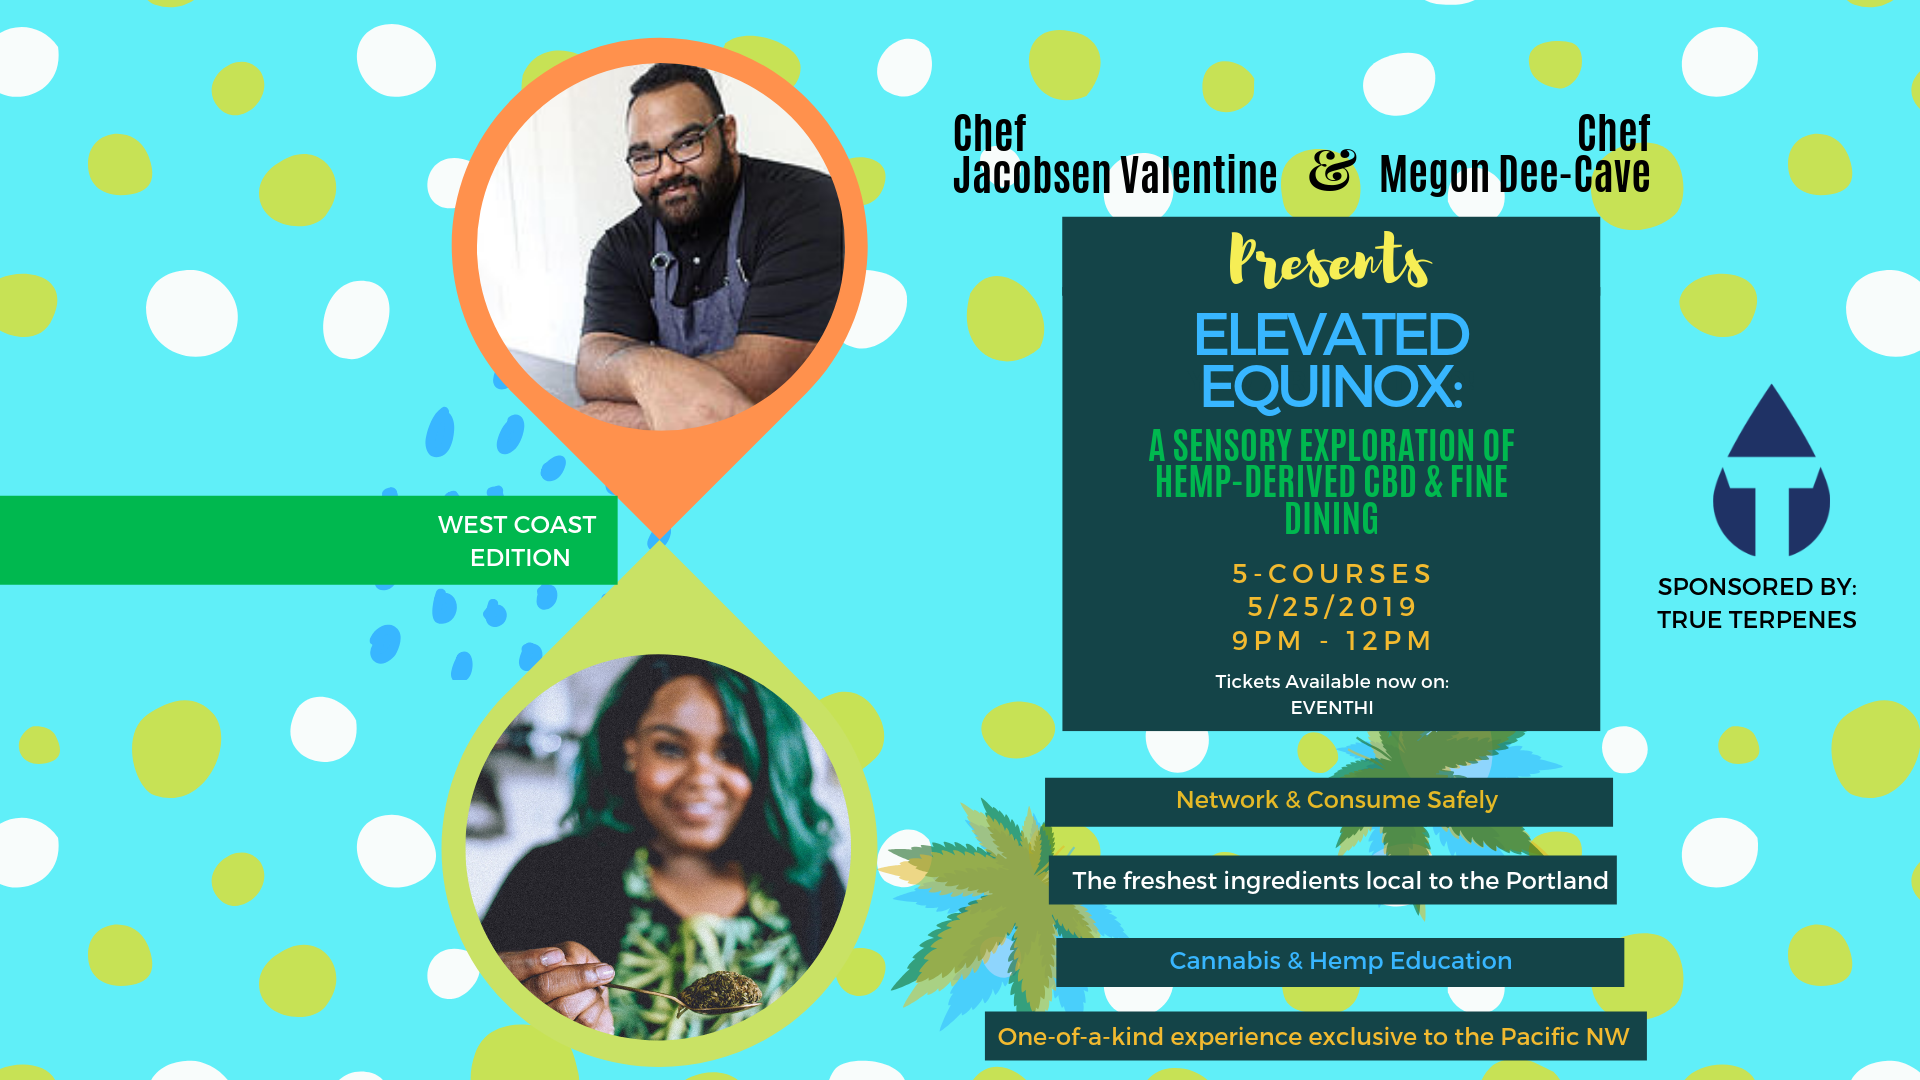 ELEVATED EQUINOX: A Sensory Exploration of Hemp-derived CBD and Fine Dining